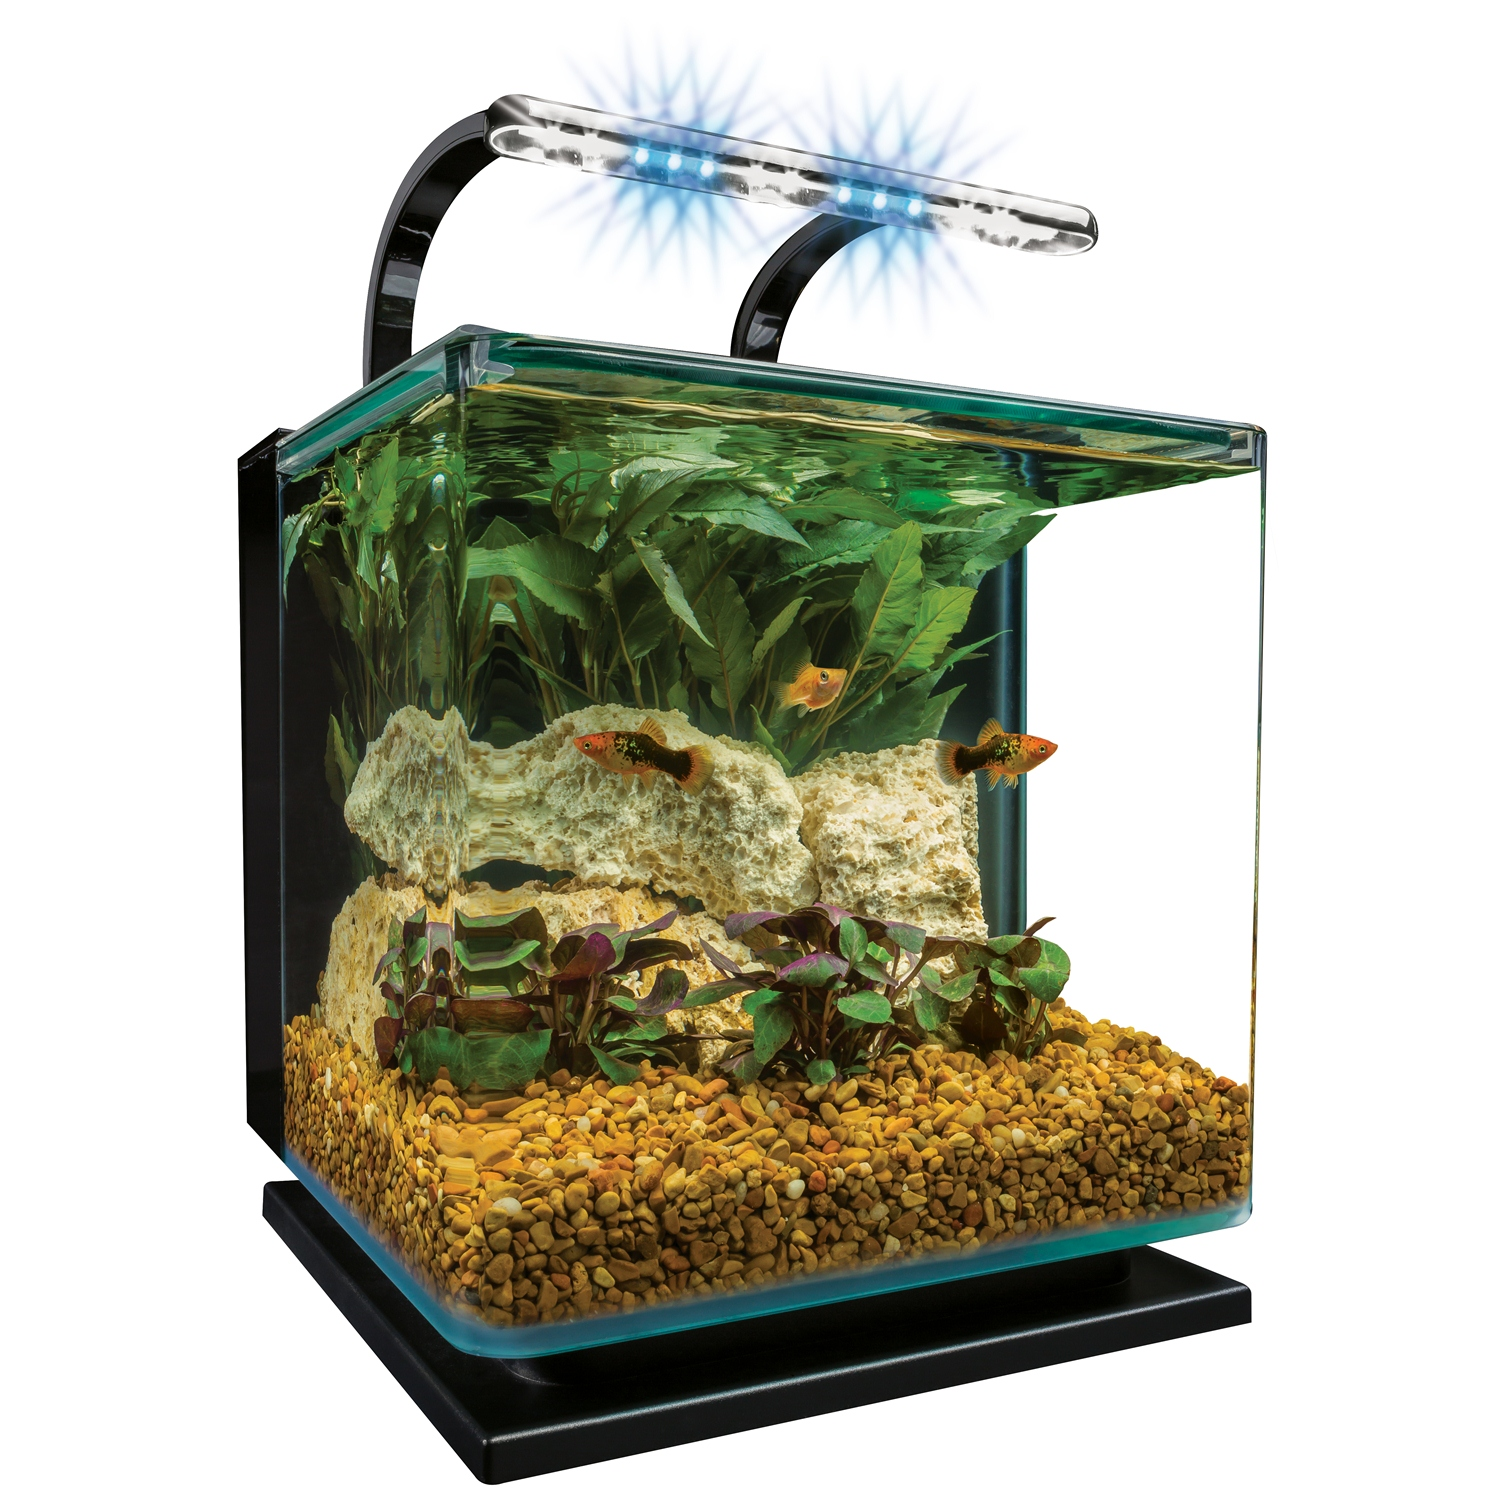 All glass aquarium fish tank - Marineland Contour 3